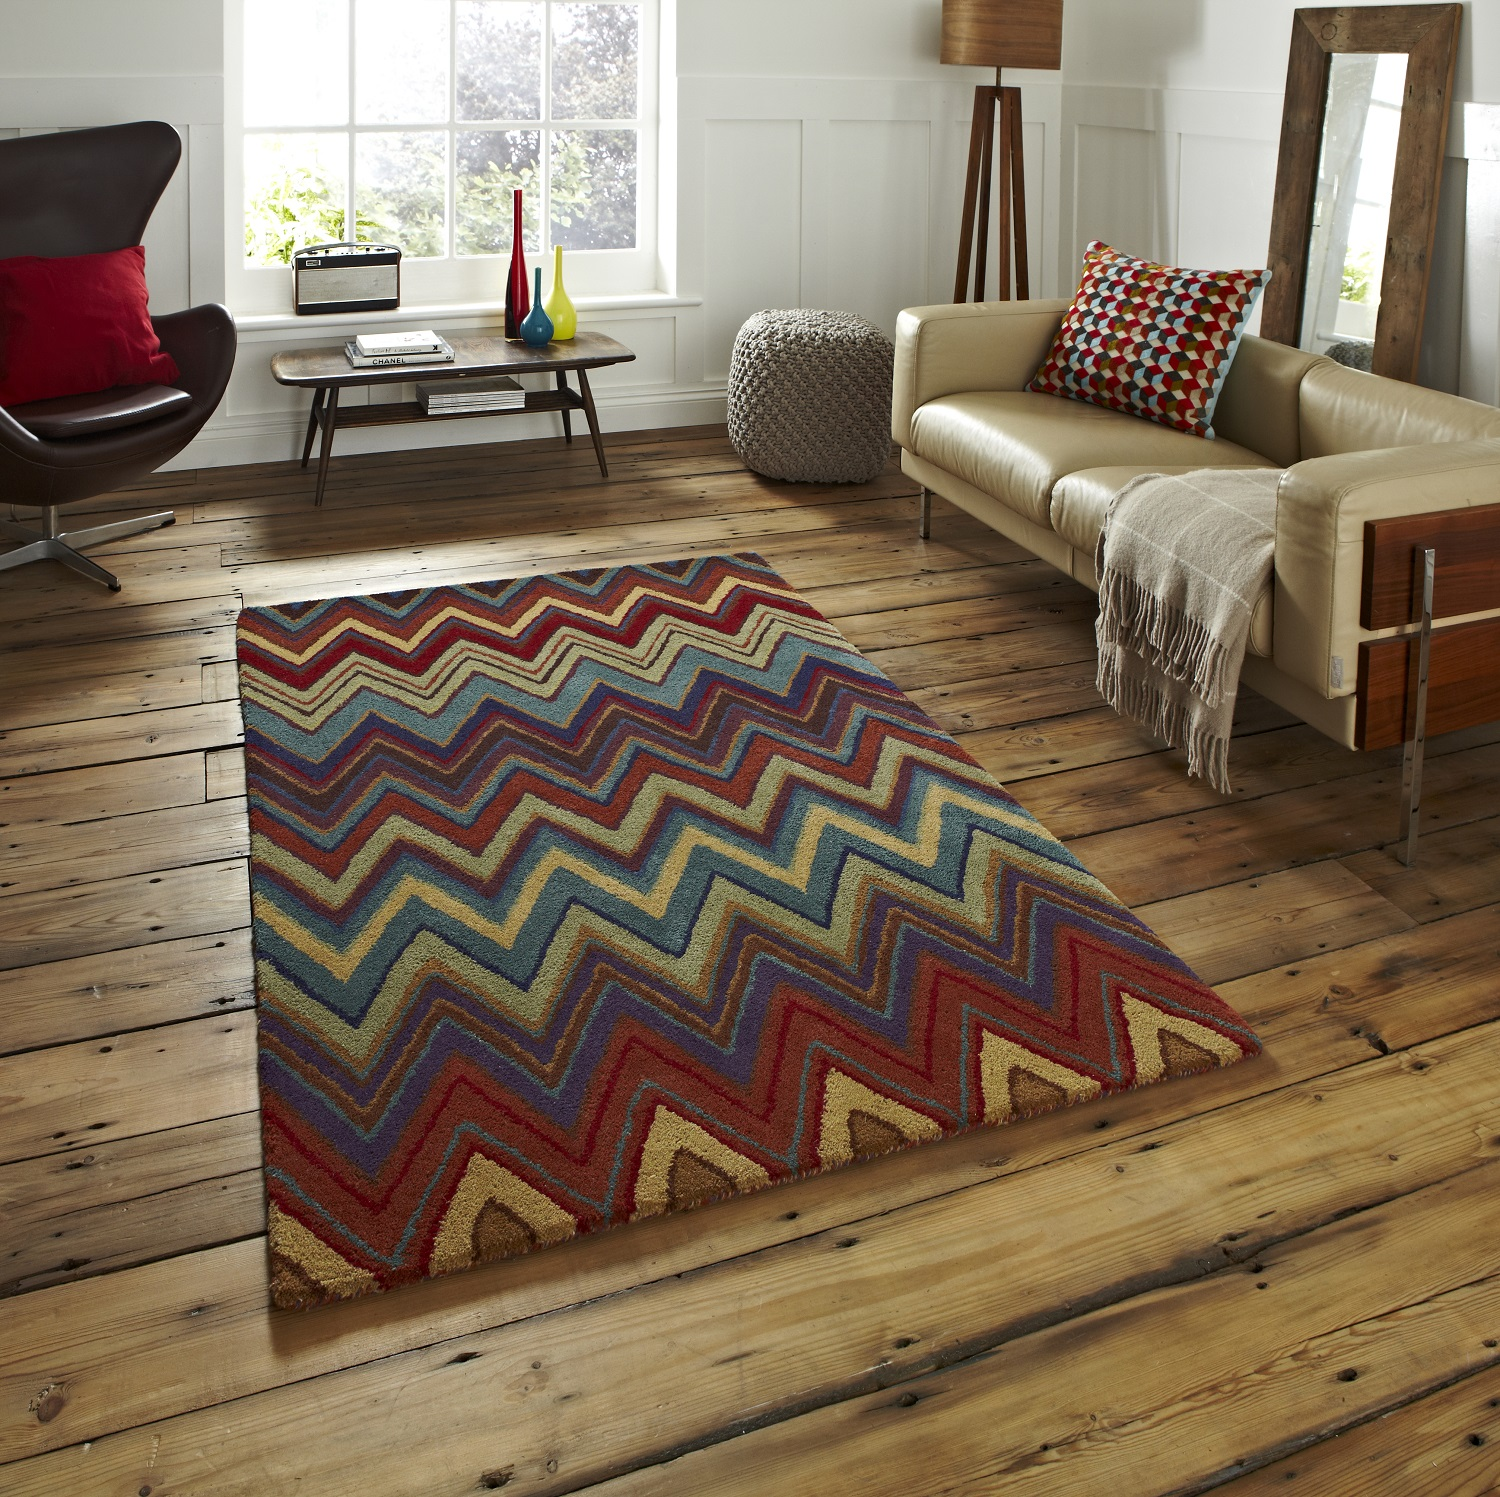 Details About Aztec Hand Tufted 100 Wool Rug Large Heavy Weight Zig Zag Multi Colour Mat Home